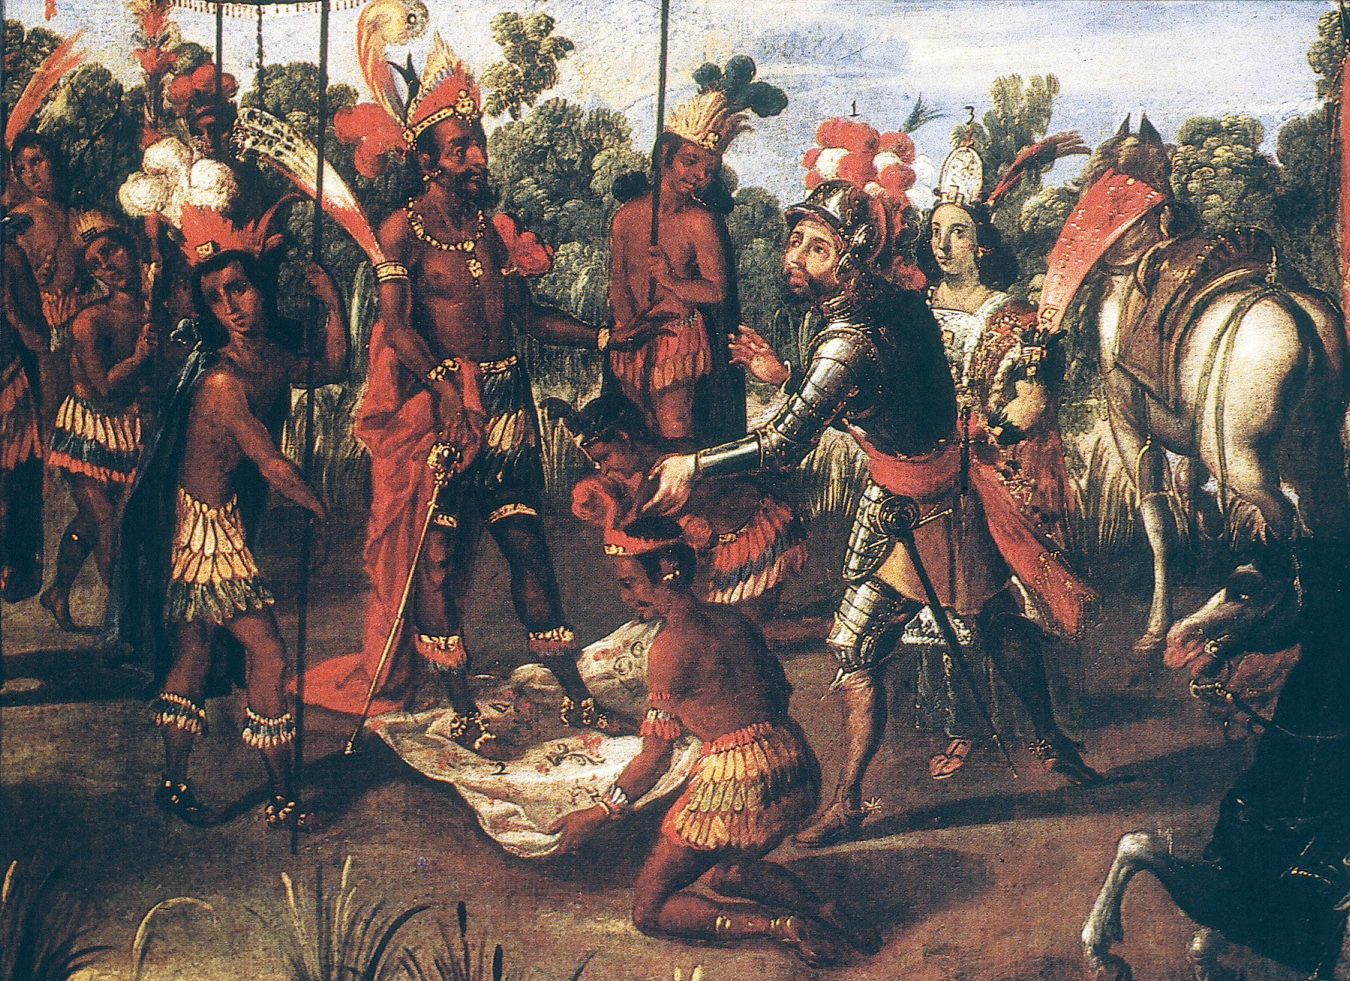 The Meeting of Cortés and Montezuma (detail), from the Conquest of Mexico series, seventeenth century. Jay I. Kislak Collection, Rare Book and Special Collections Division, United States Library of Congress.